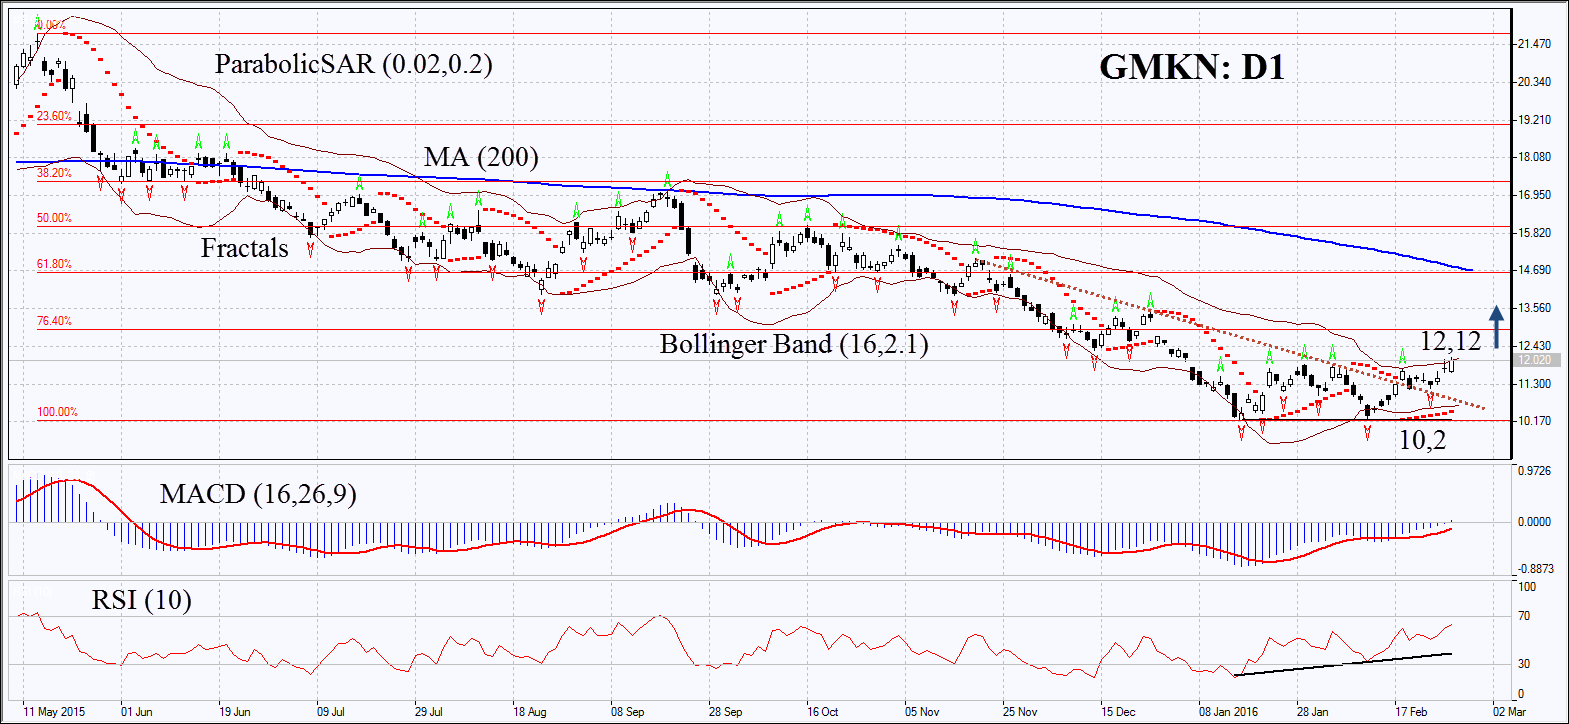 GMKN Daily Chart